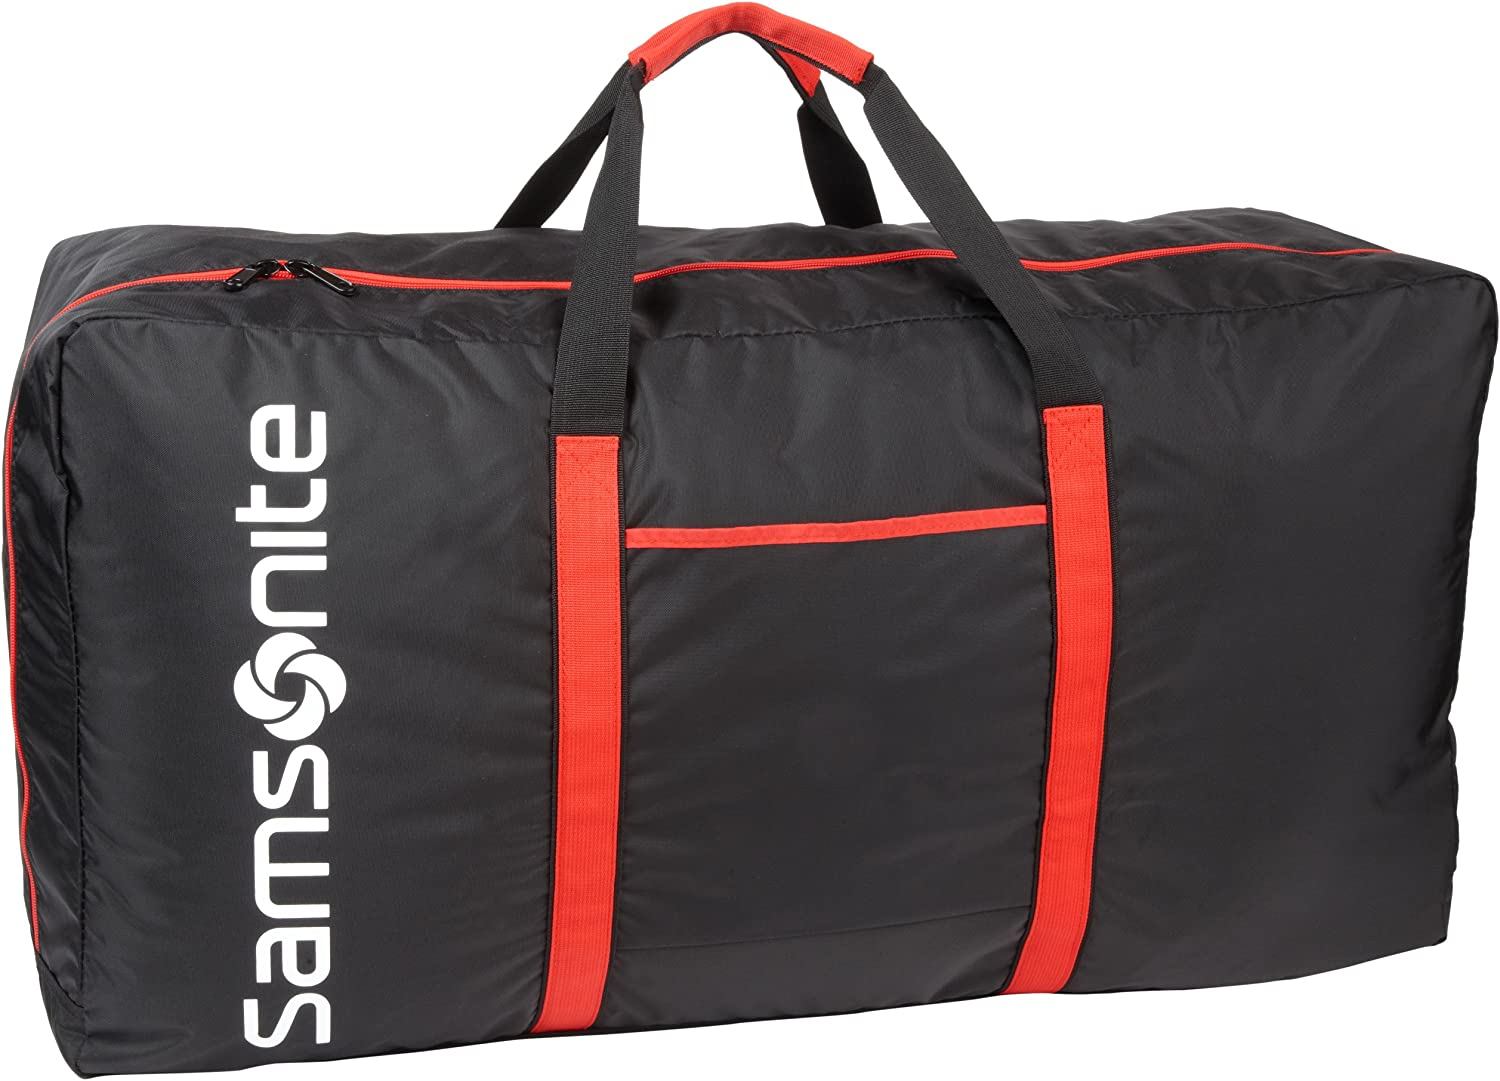 | Samsonite Tote-A-Ton 32.5-Inch Duffel Bag, Black, Single | Carry-Ons